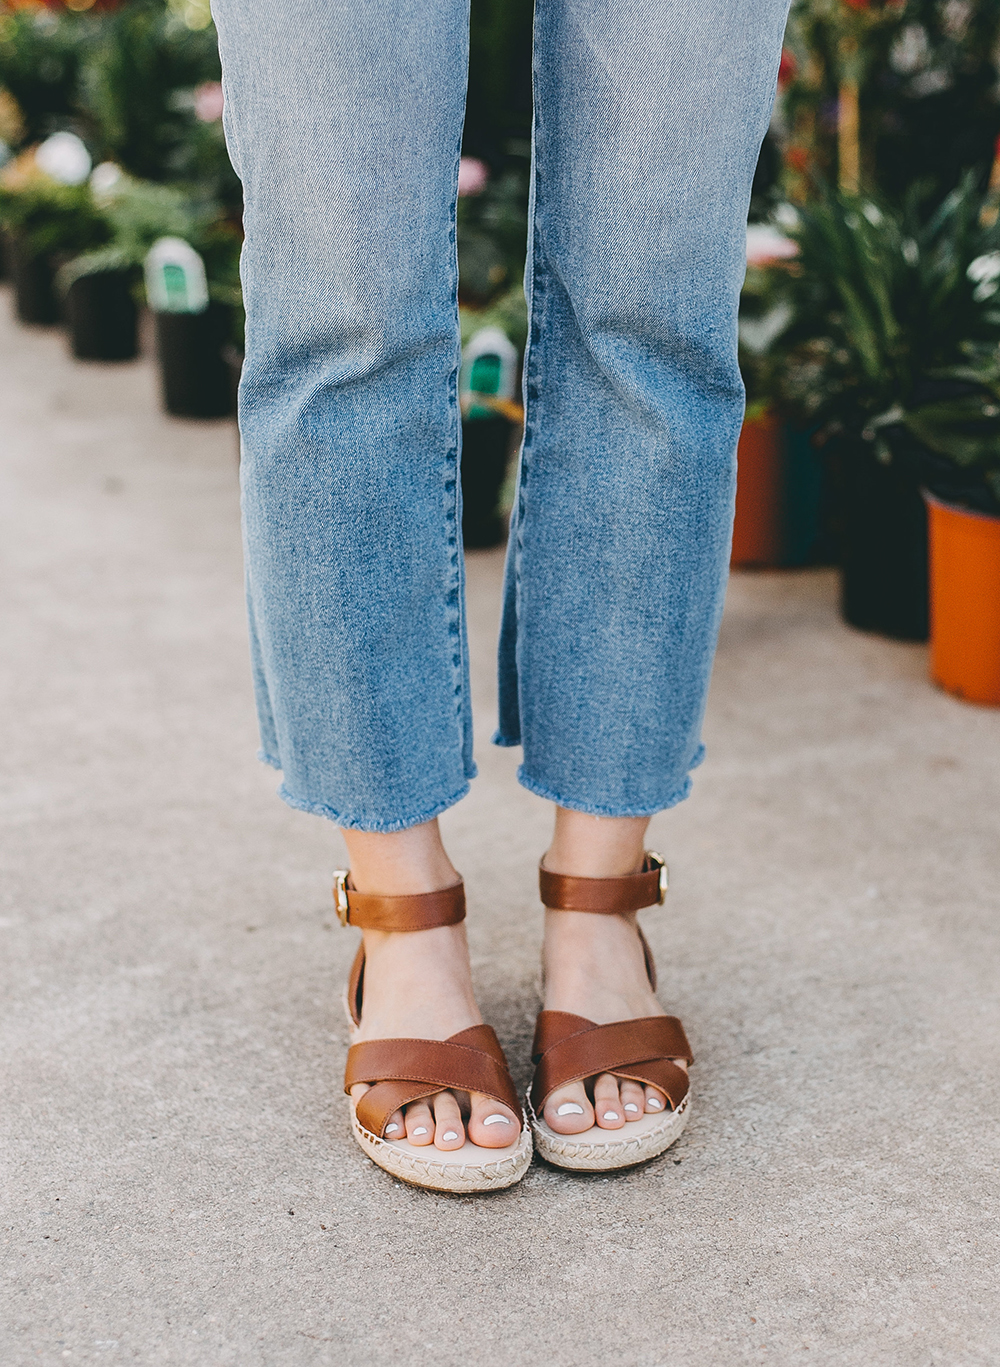 olivia-watson-austin-texas-fashion-lifestyle-blogger-plant-flower-shop-sole-society-espadrille-sandals-5